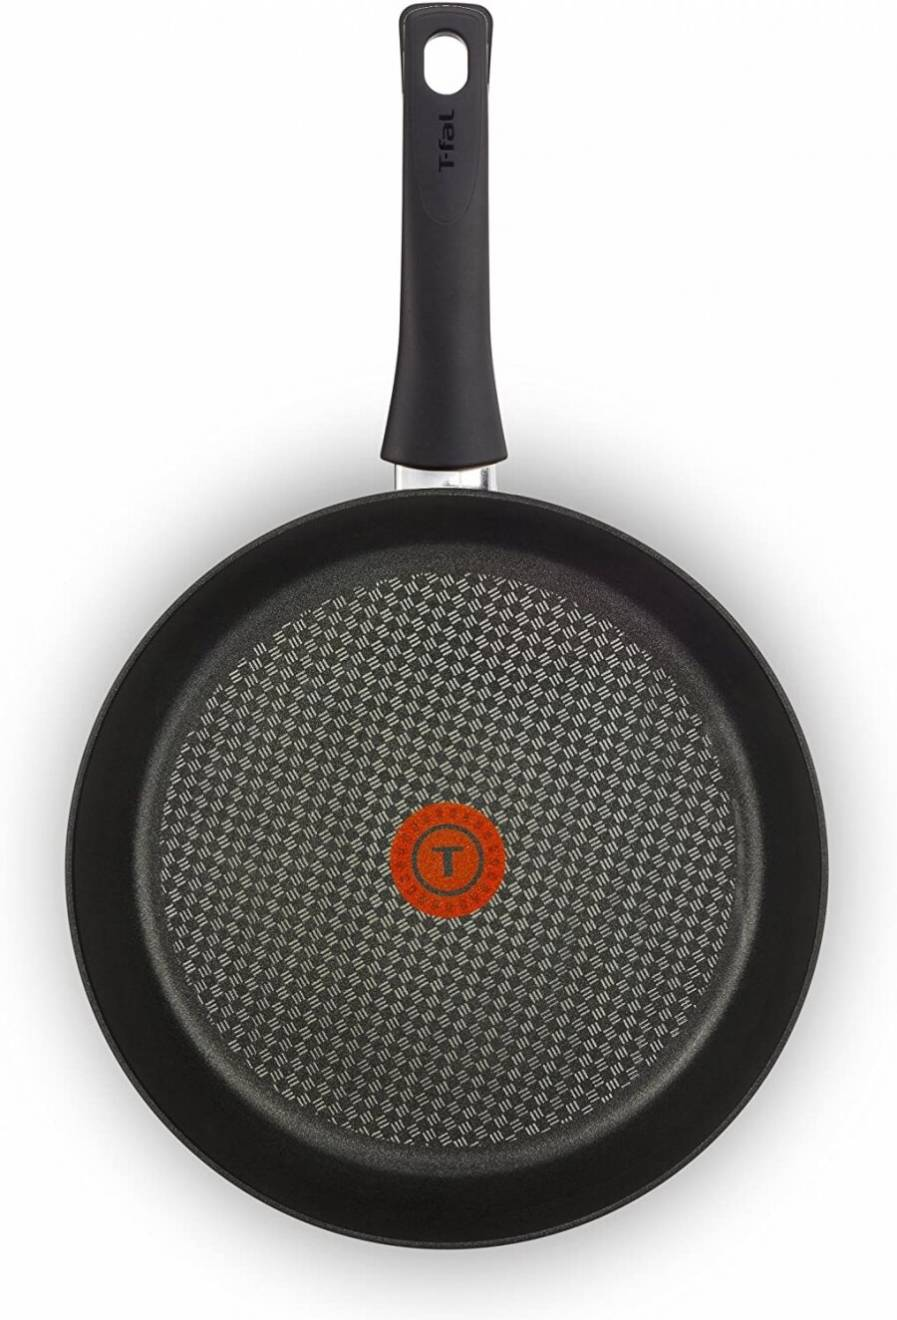 CHEF DELIGHT 22CM FRYPAN With THERMOSPOT